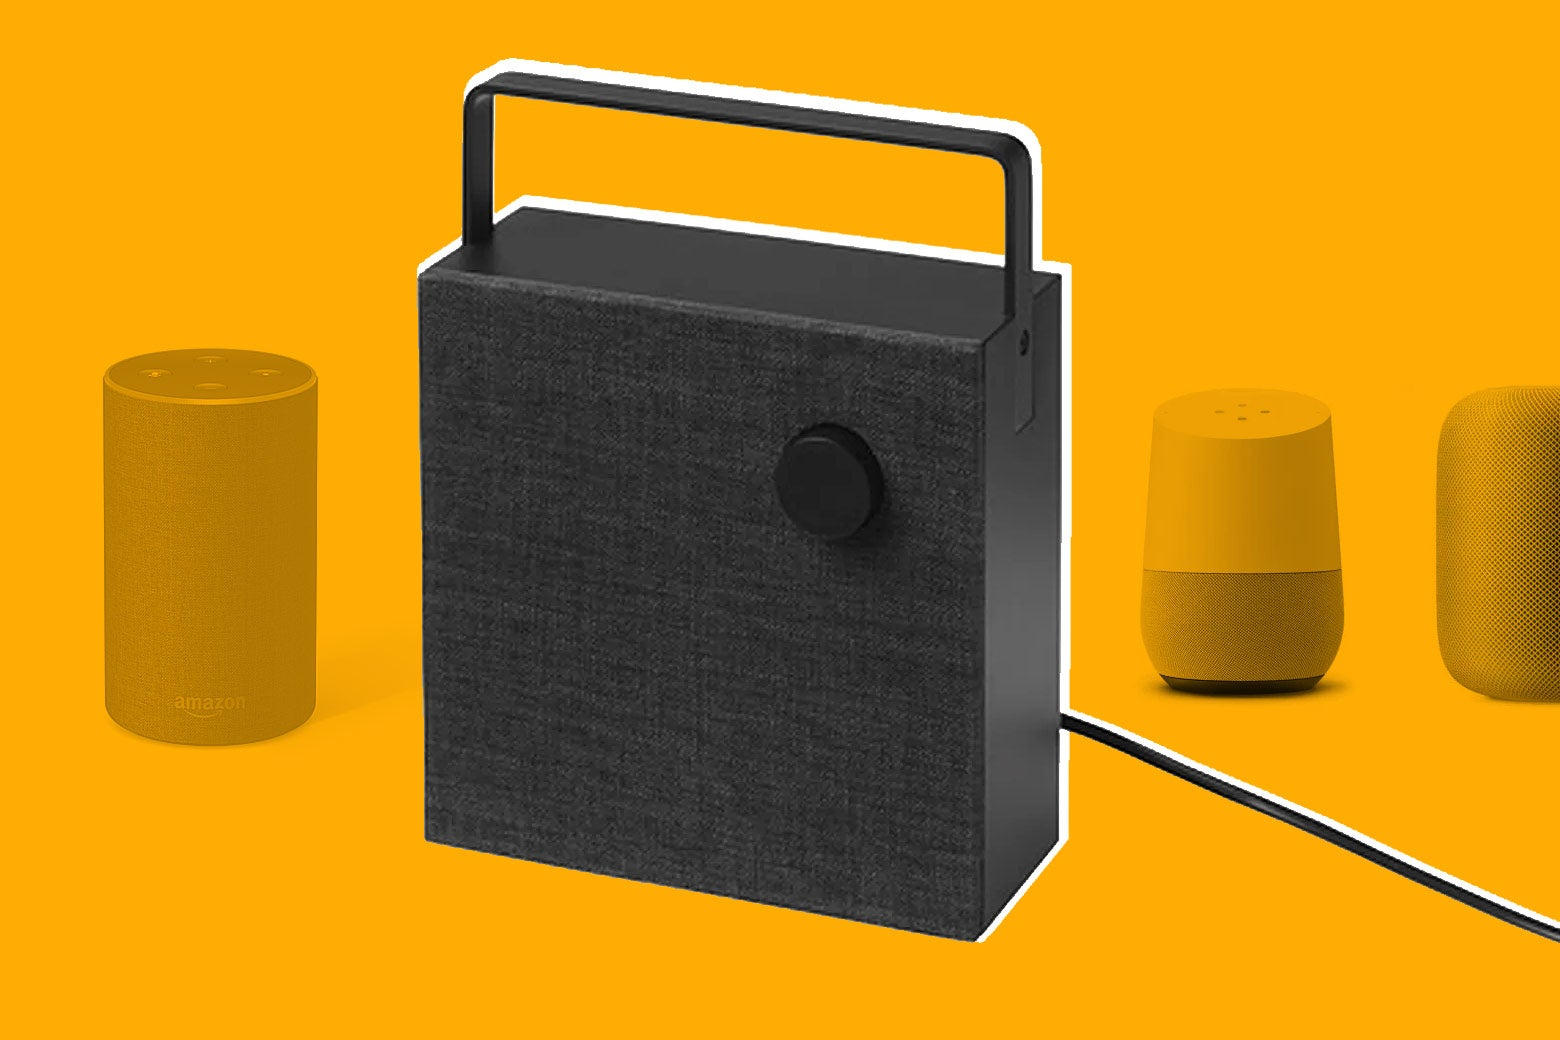 Ikea's new speaker, the Eneby, besides the Google Home, Amazon Echo, and Apple HomePod.